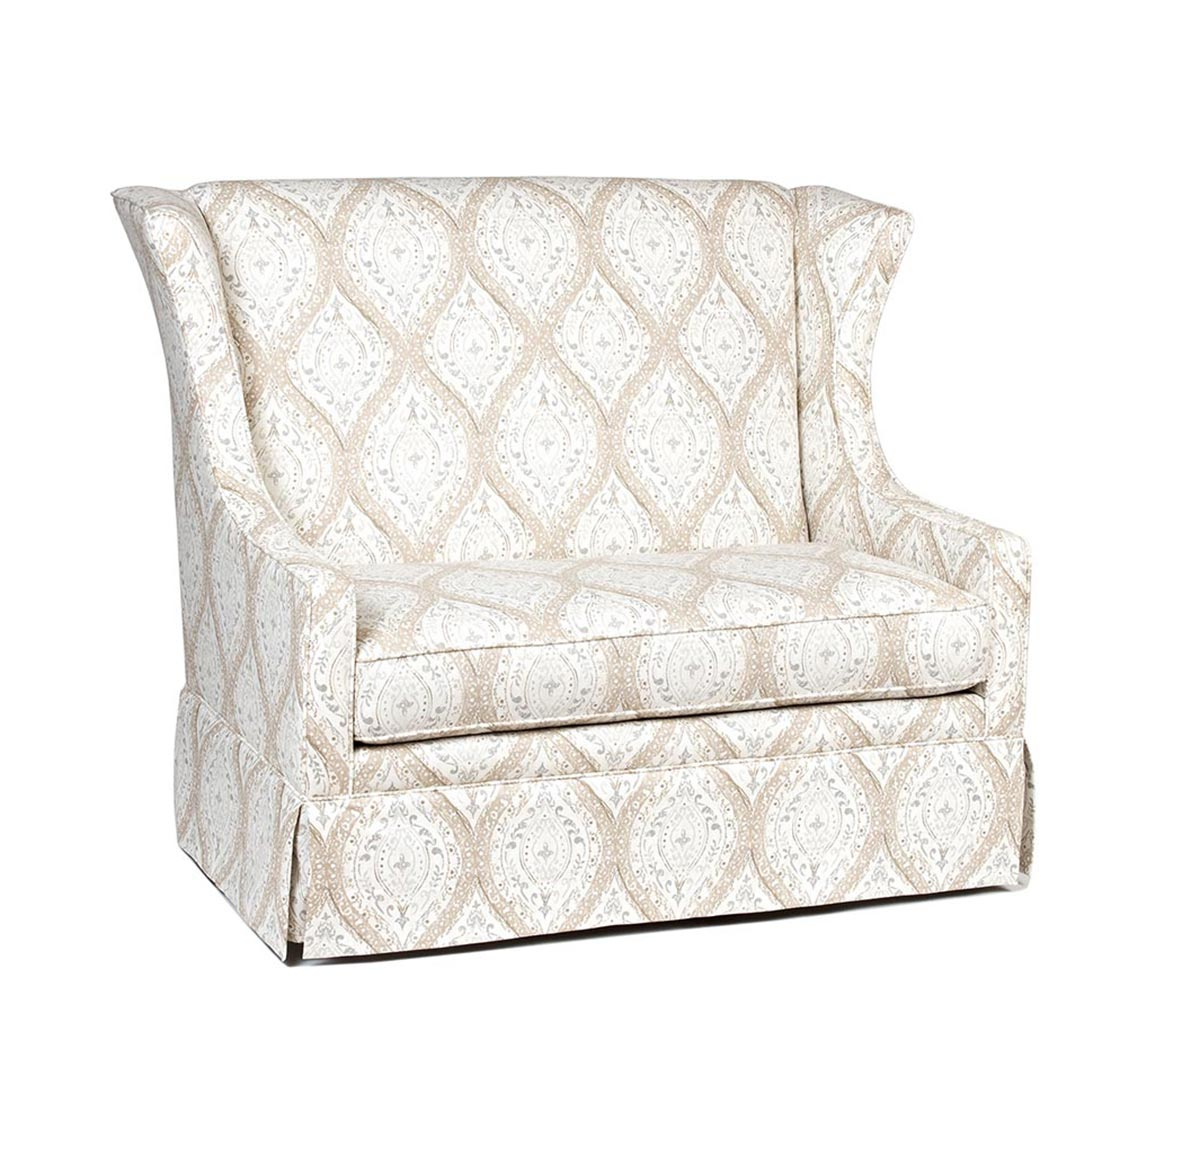 Chelsea Home Great Barrington Chair - White/Beige